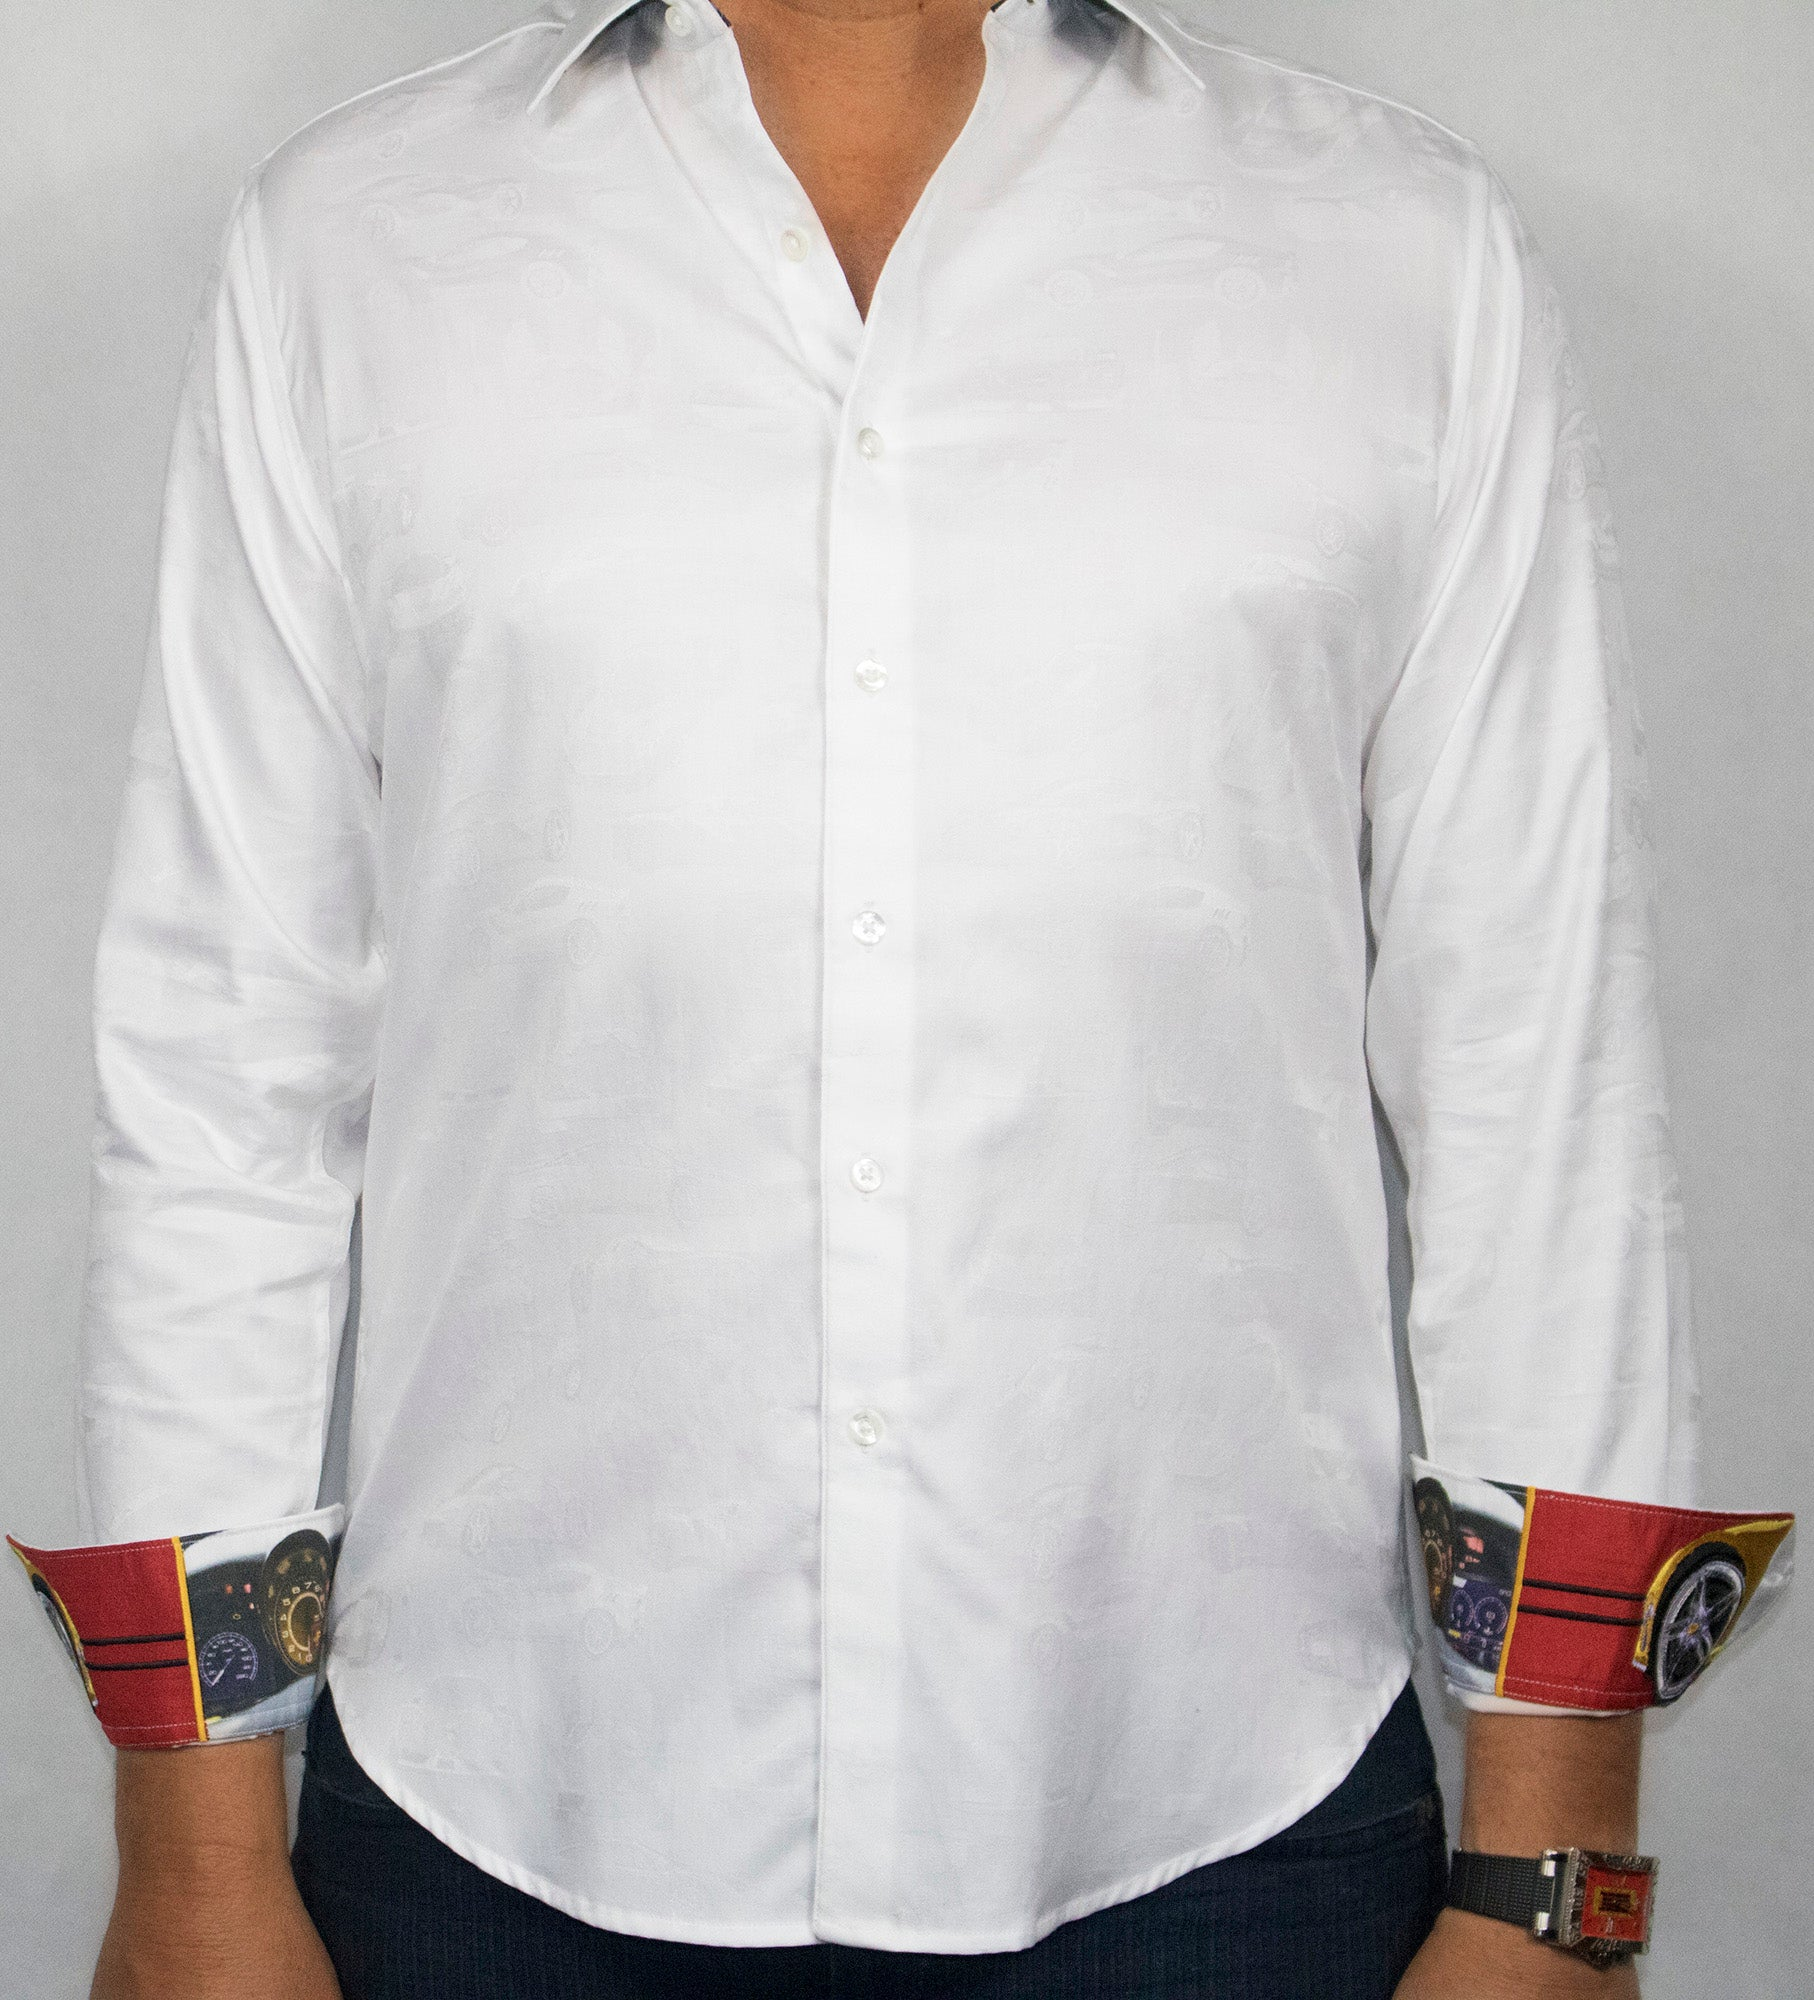 Robert Graham 2019 White D. Ferrari Sport Shirt